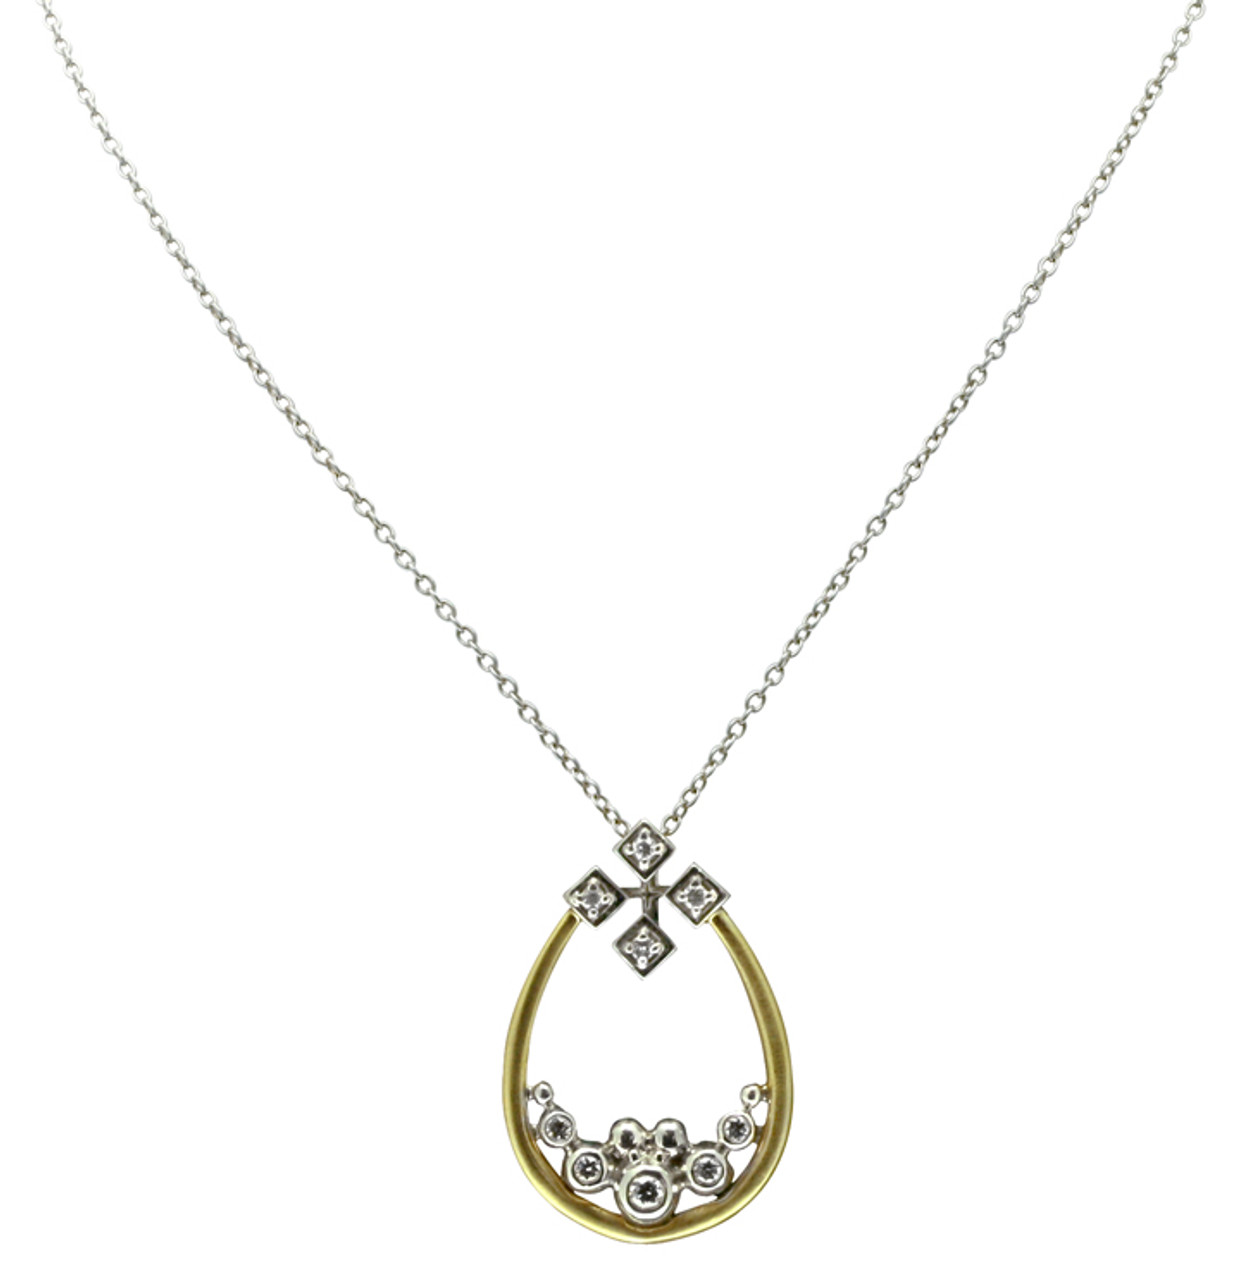 Pyramid tear necklace- in white and yellow gold with diamonds.